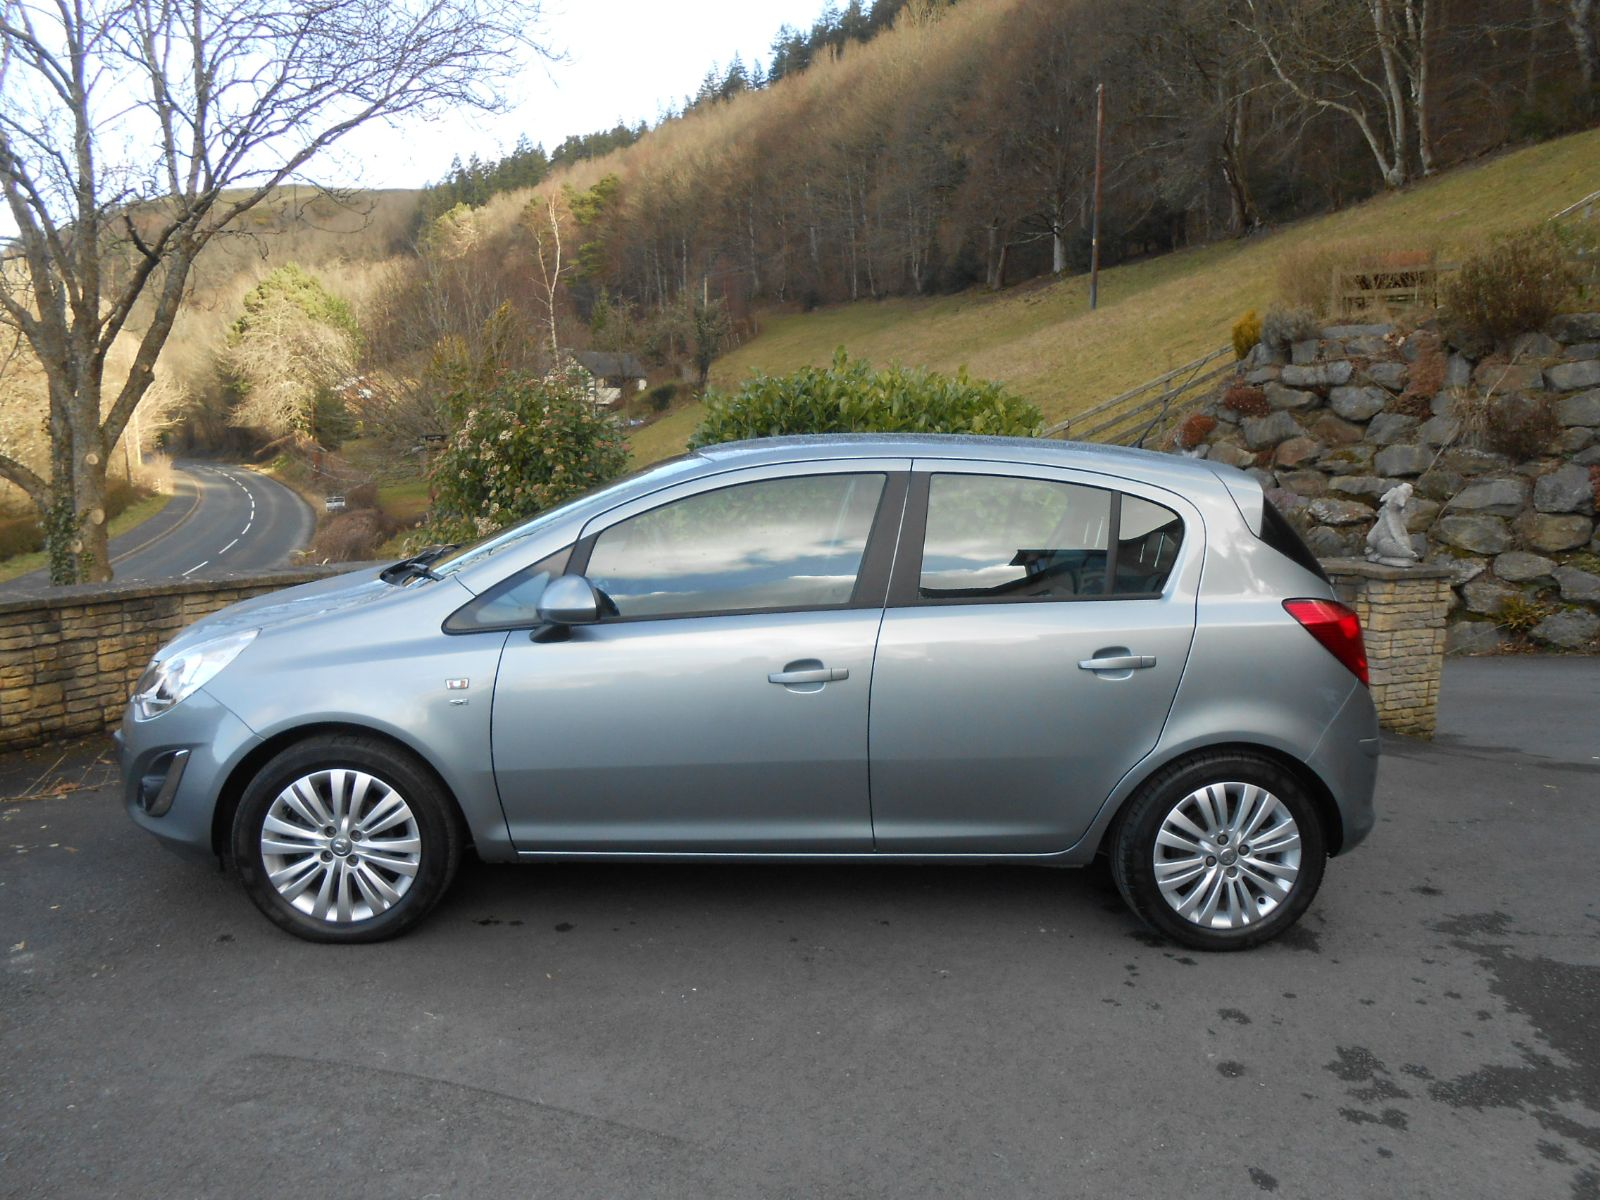 Vauxhall Corsa 1 4 Se 5 Door Car For Sale Llanidloes Powys